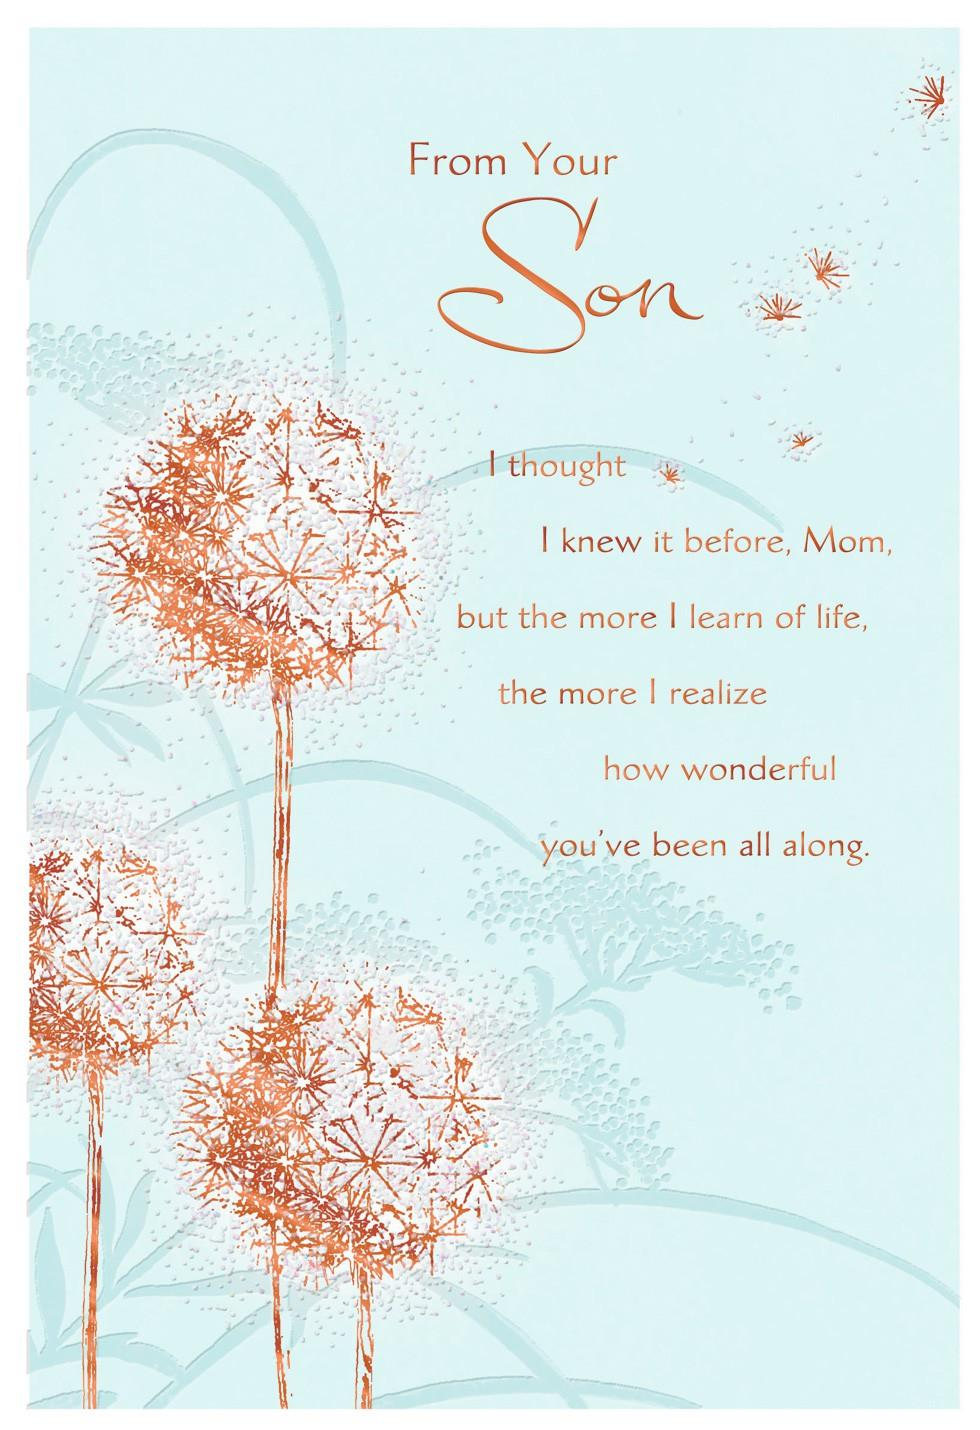 Dandelions Mother's Day Card From Son - Greeting Cards ...